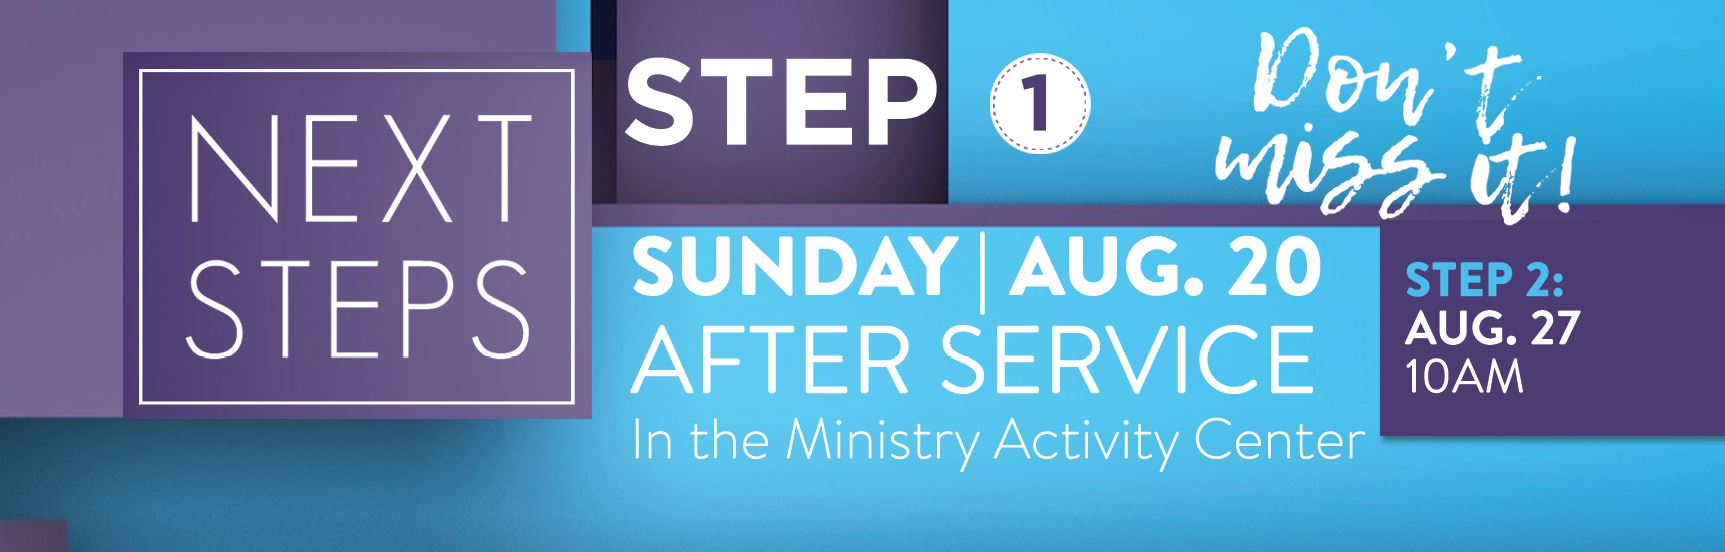 Next Steps, Step 1 | Sunday, August 20, After Service in the Ministry Activity Center | Don't Miss it! | Step 2, August, 27, 10am